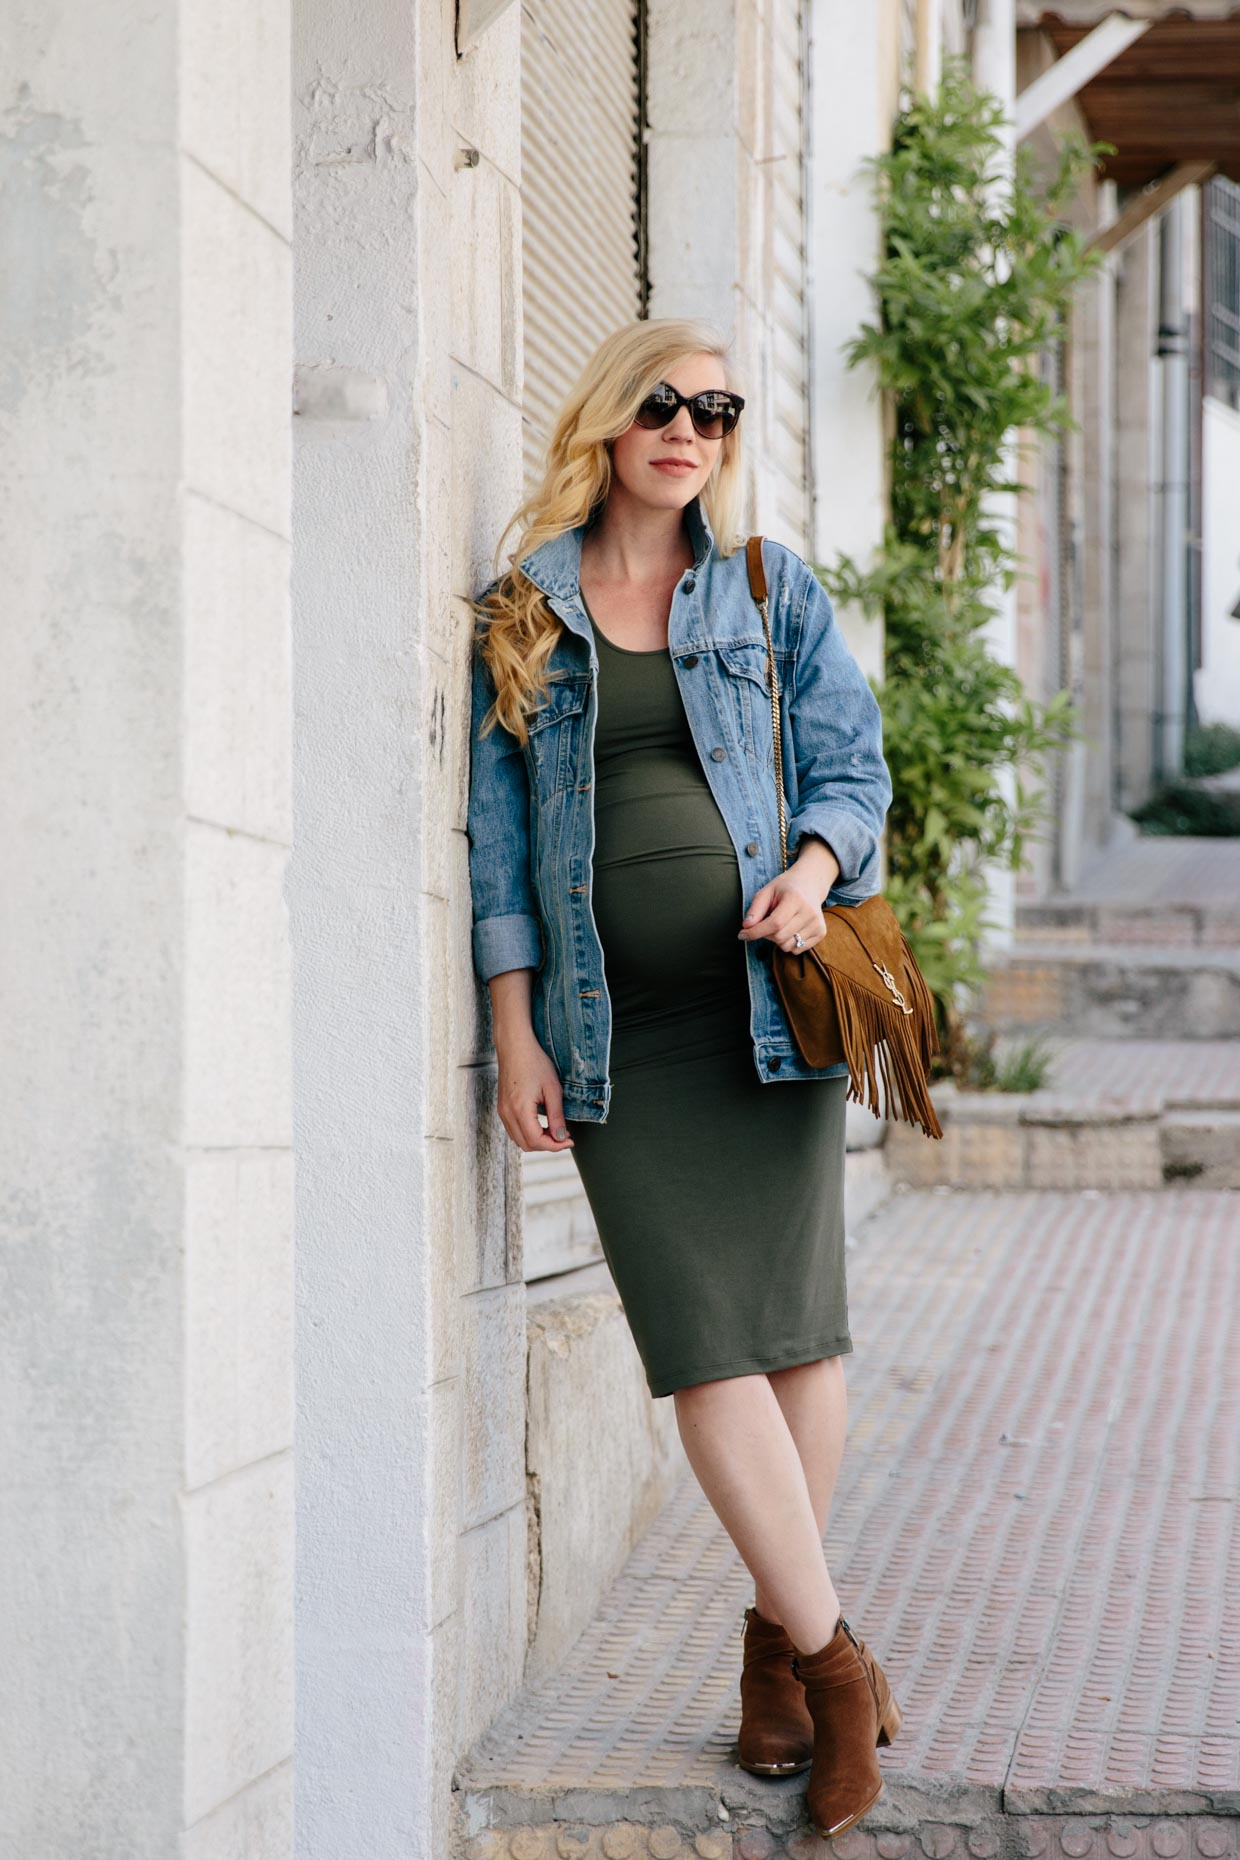 The maternity dress that will fit your entire pregnancy meagans im probably stating the obvious but buying maternity clothing can be frustrating something you bought that fit perfectly at five months may not fit the ombrellifo Images